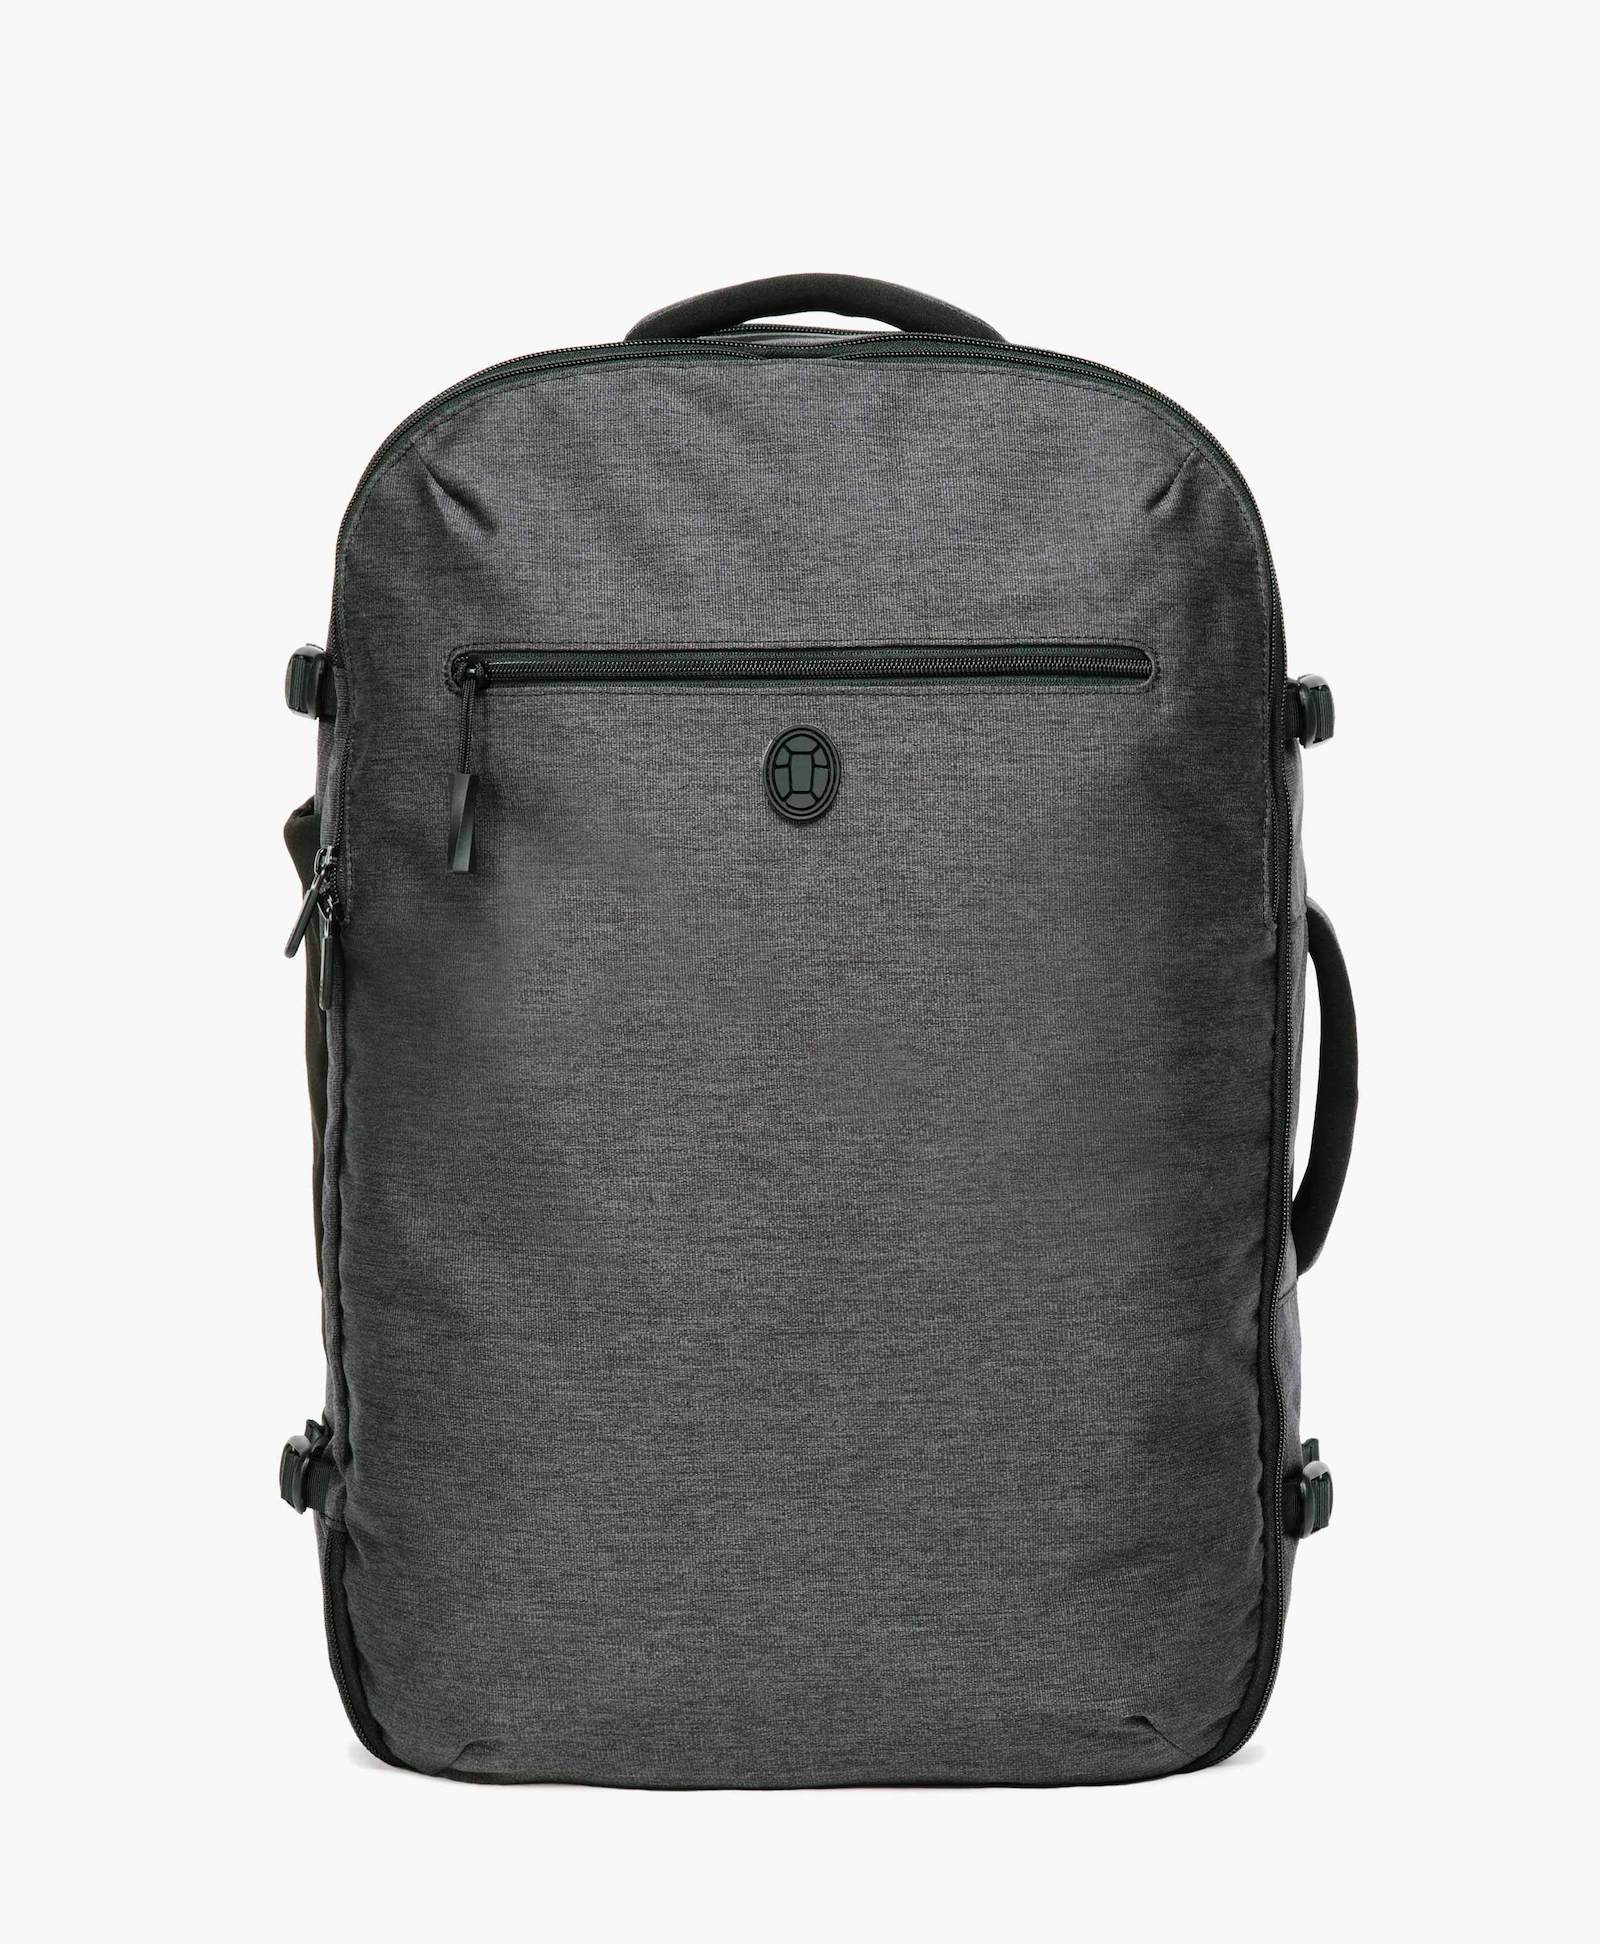 SET backpack